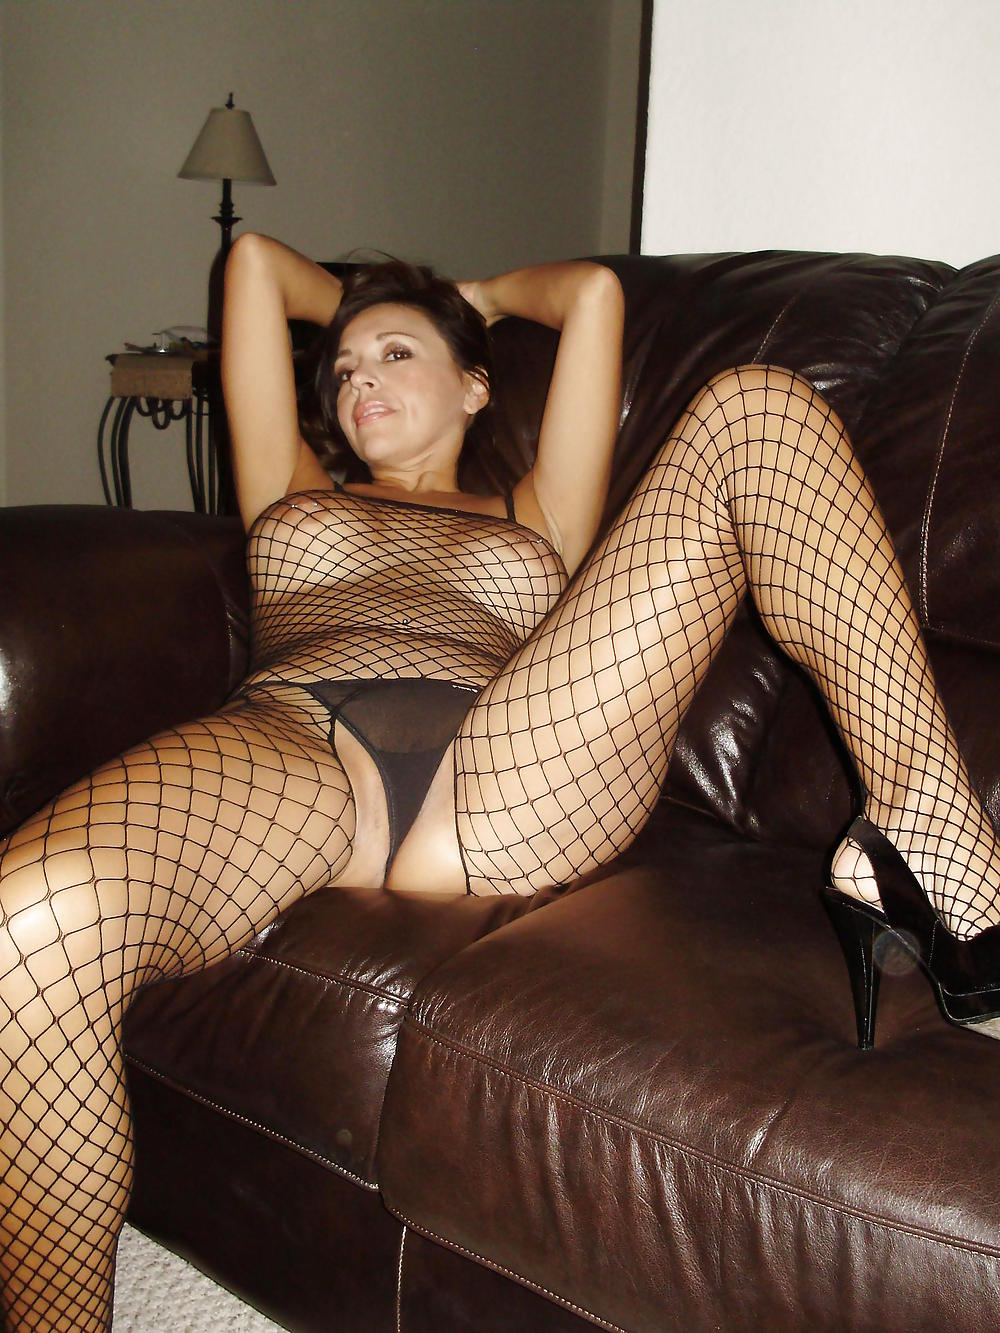 Hot latinas paris girls escort